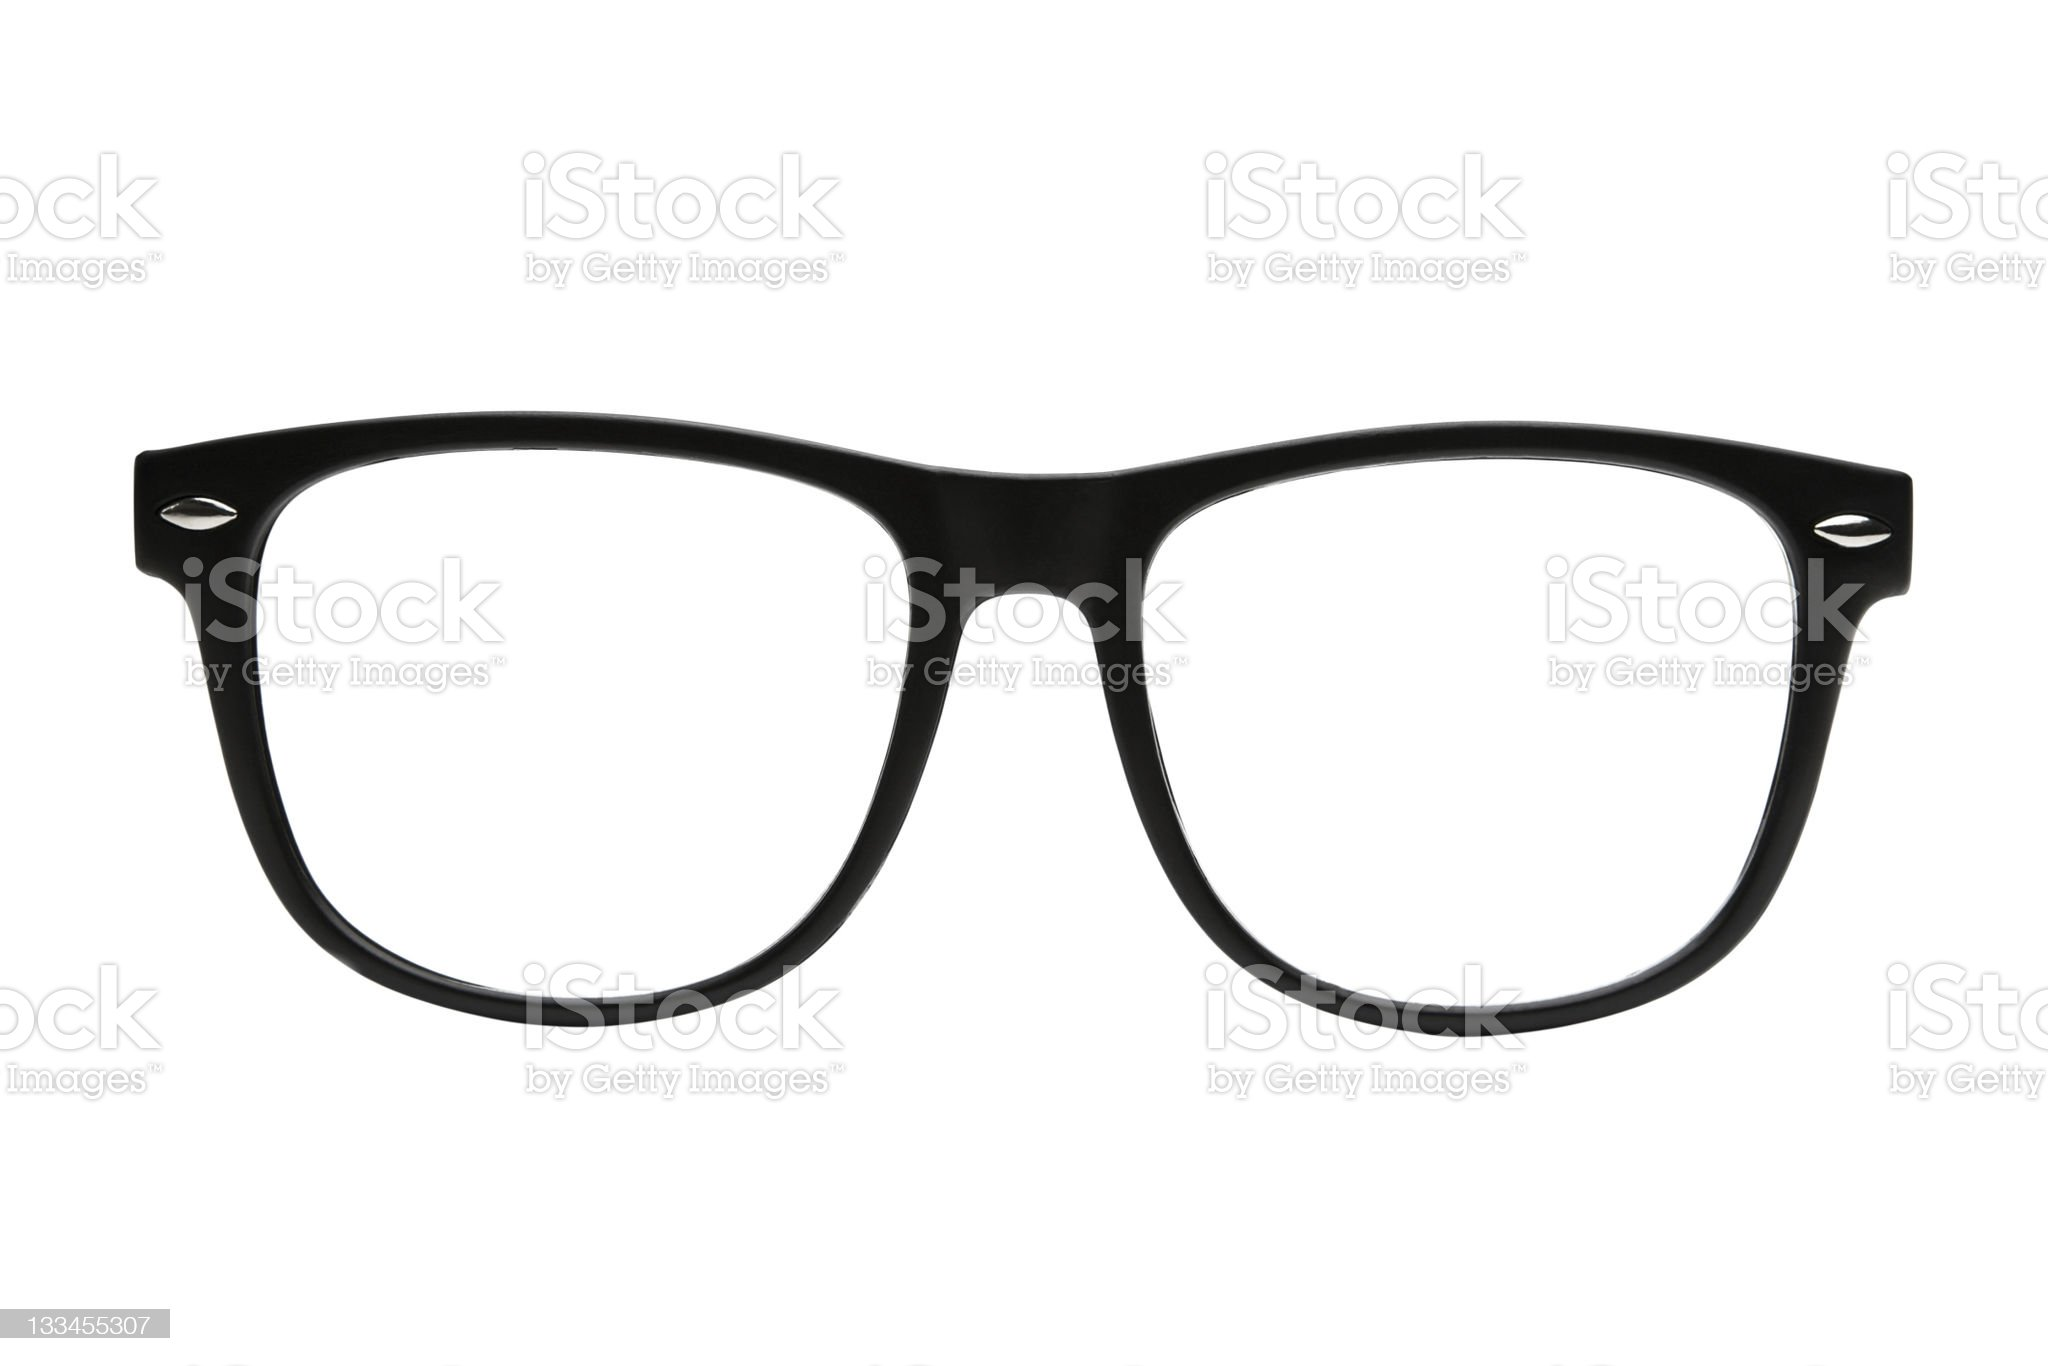 Black retro nerd frames on white background with clipping path royalty-free stock photo